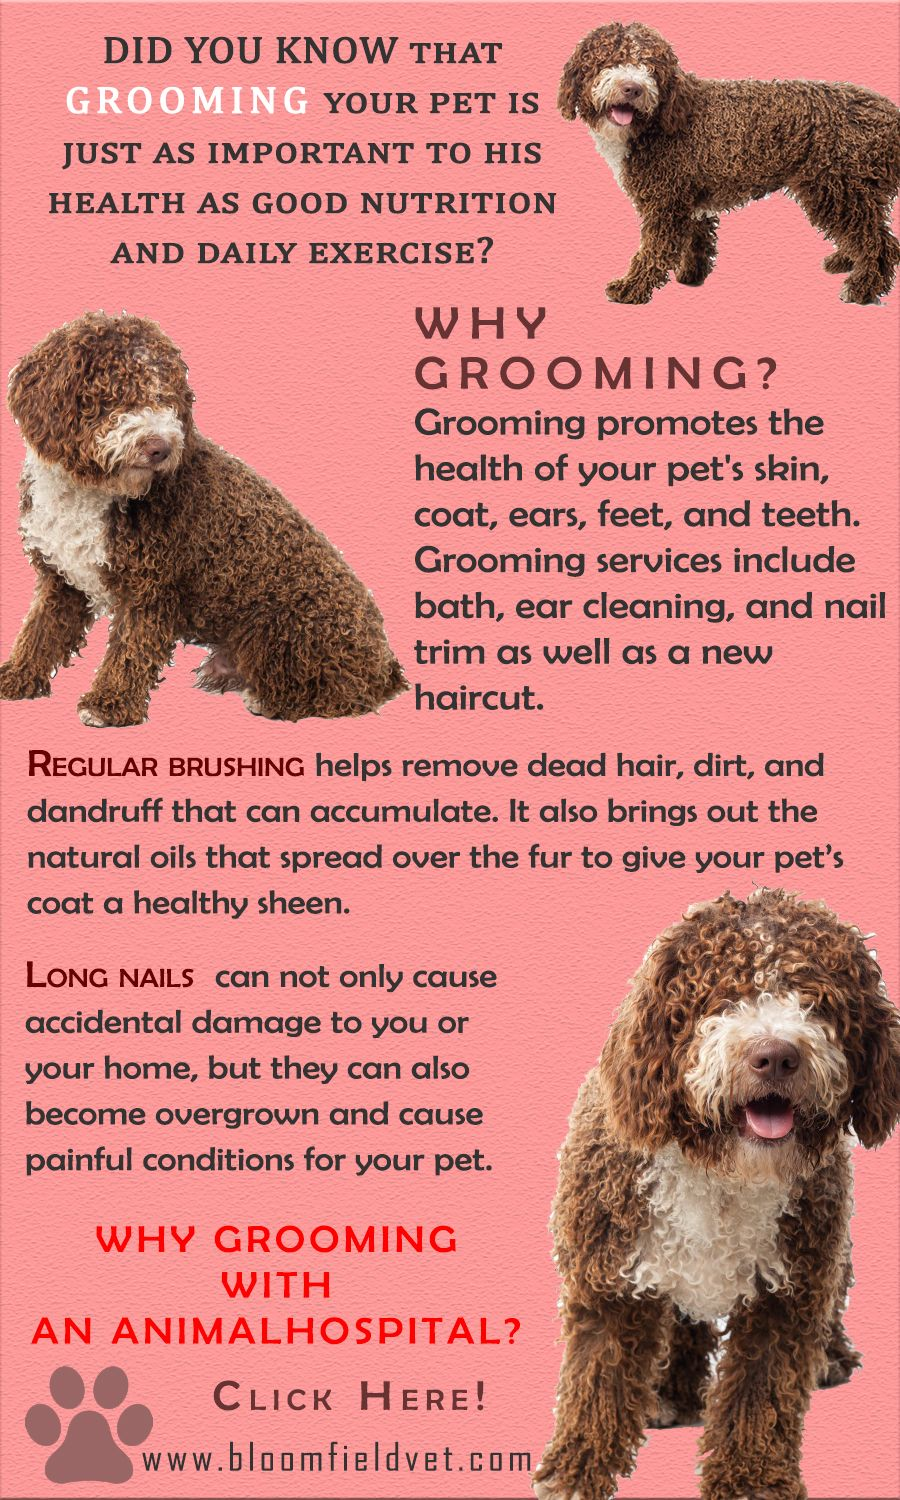 Grooming Services For Pets Maintain Their Cleanliness And Their Overall Health And Well Being Learn More Pets Petdog Animal Hospital Pet Grooming Pet Health